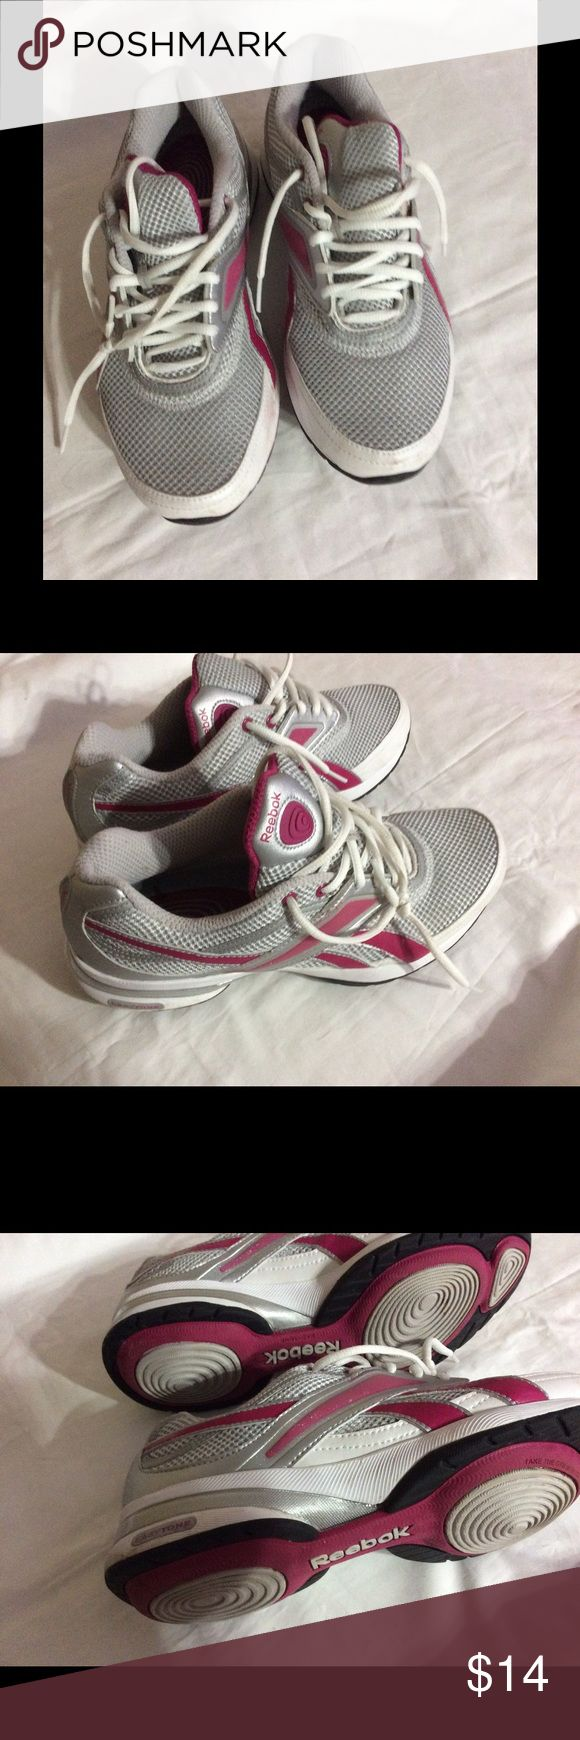 Reebok- woman's tie up sneakers Reebok- woman's tie up pink and gray sneakers. There is a small stain on the outer left sneaker. You can see from the bottoms they were hardly worn. Enjoy Reebok Shoes Sneakers